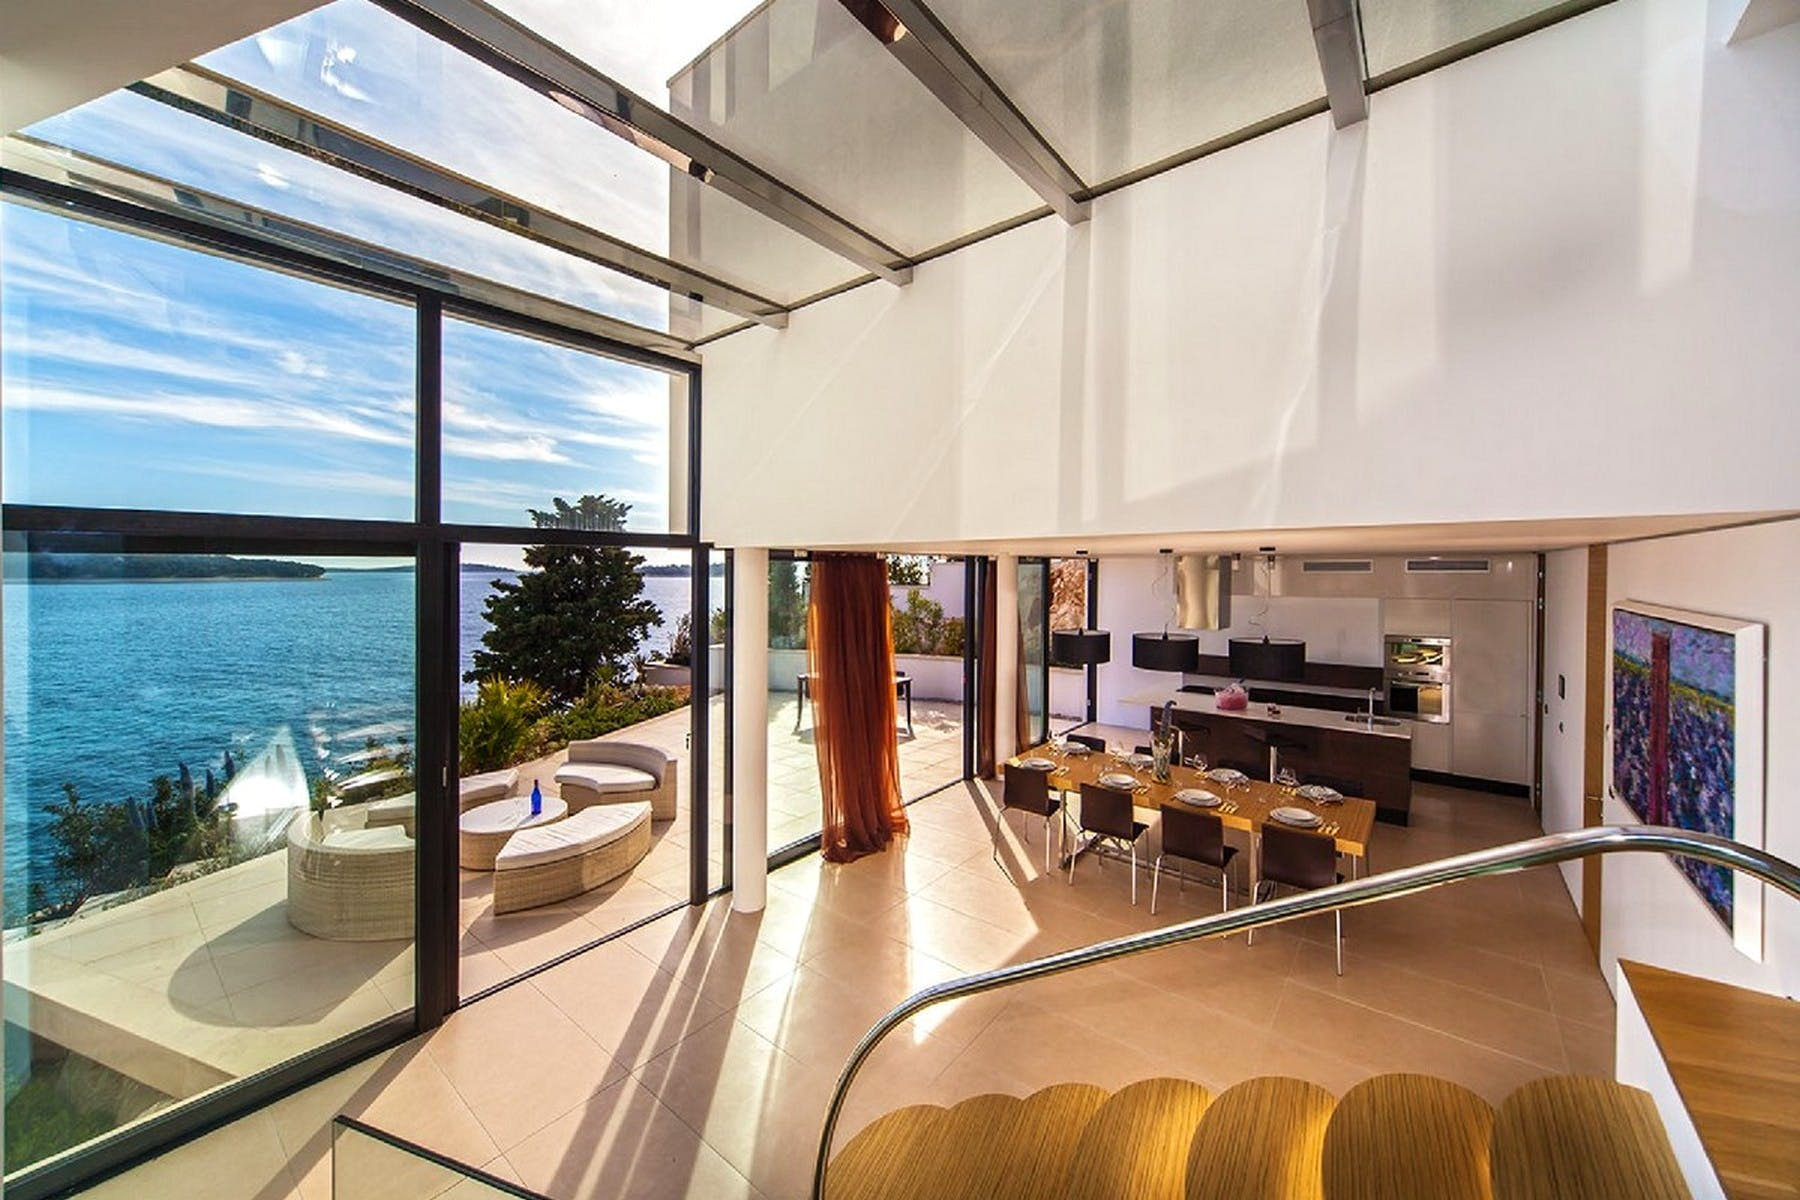 Modern interior with sea view